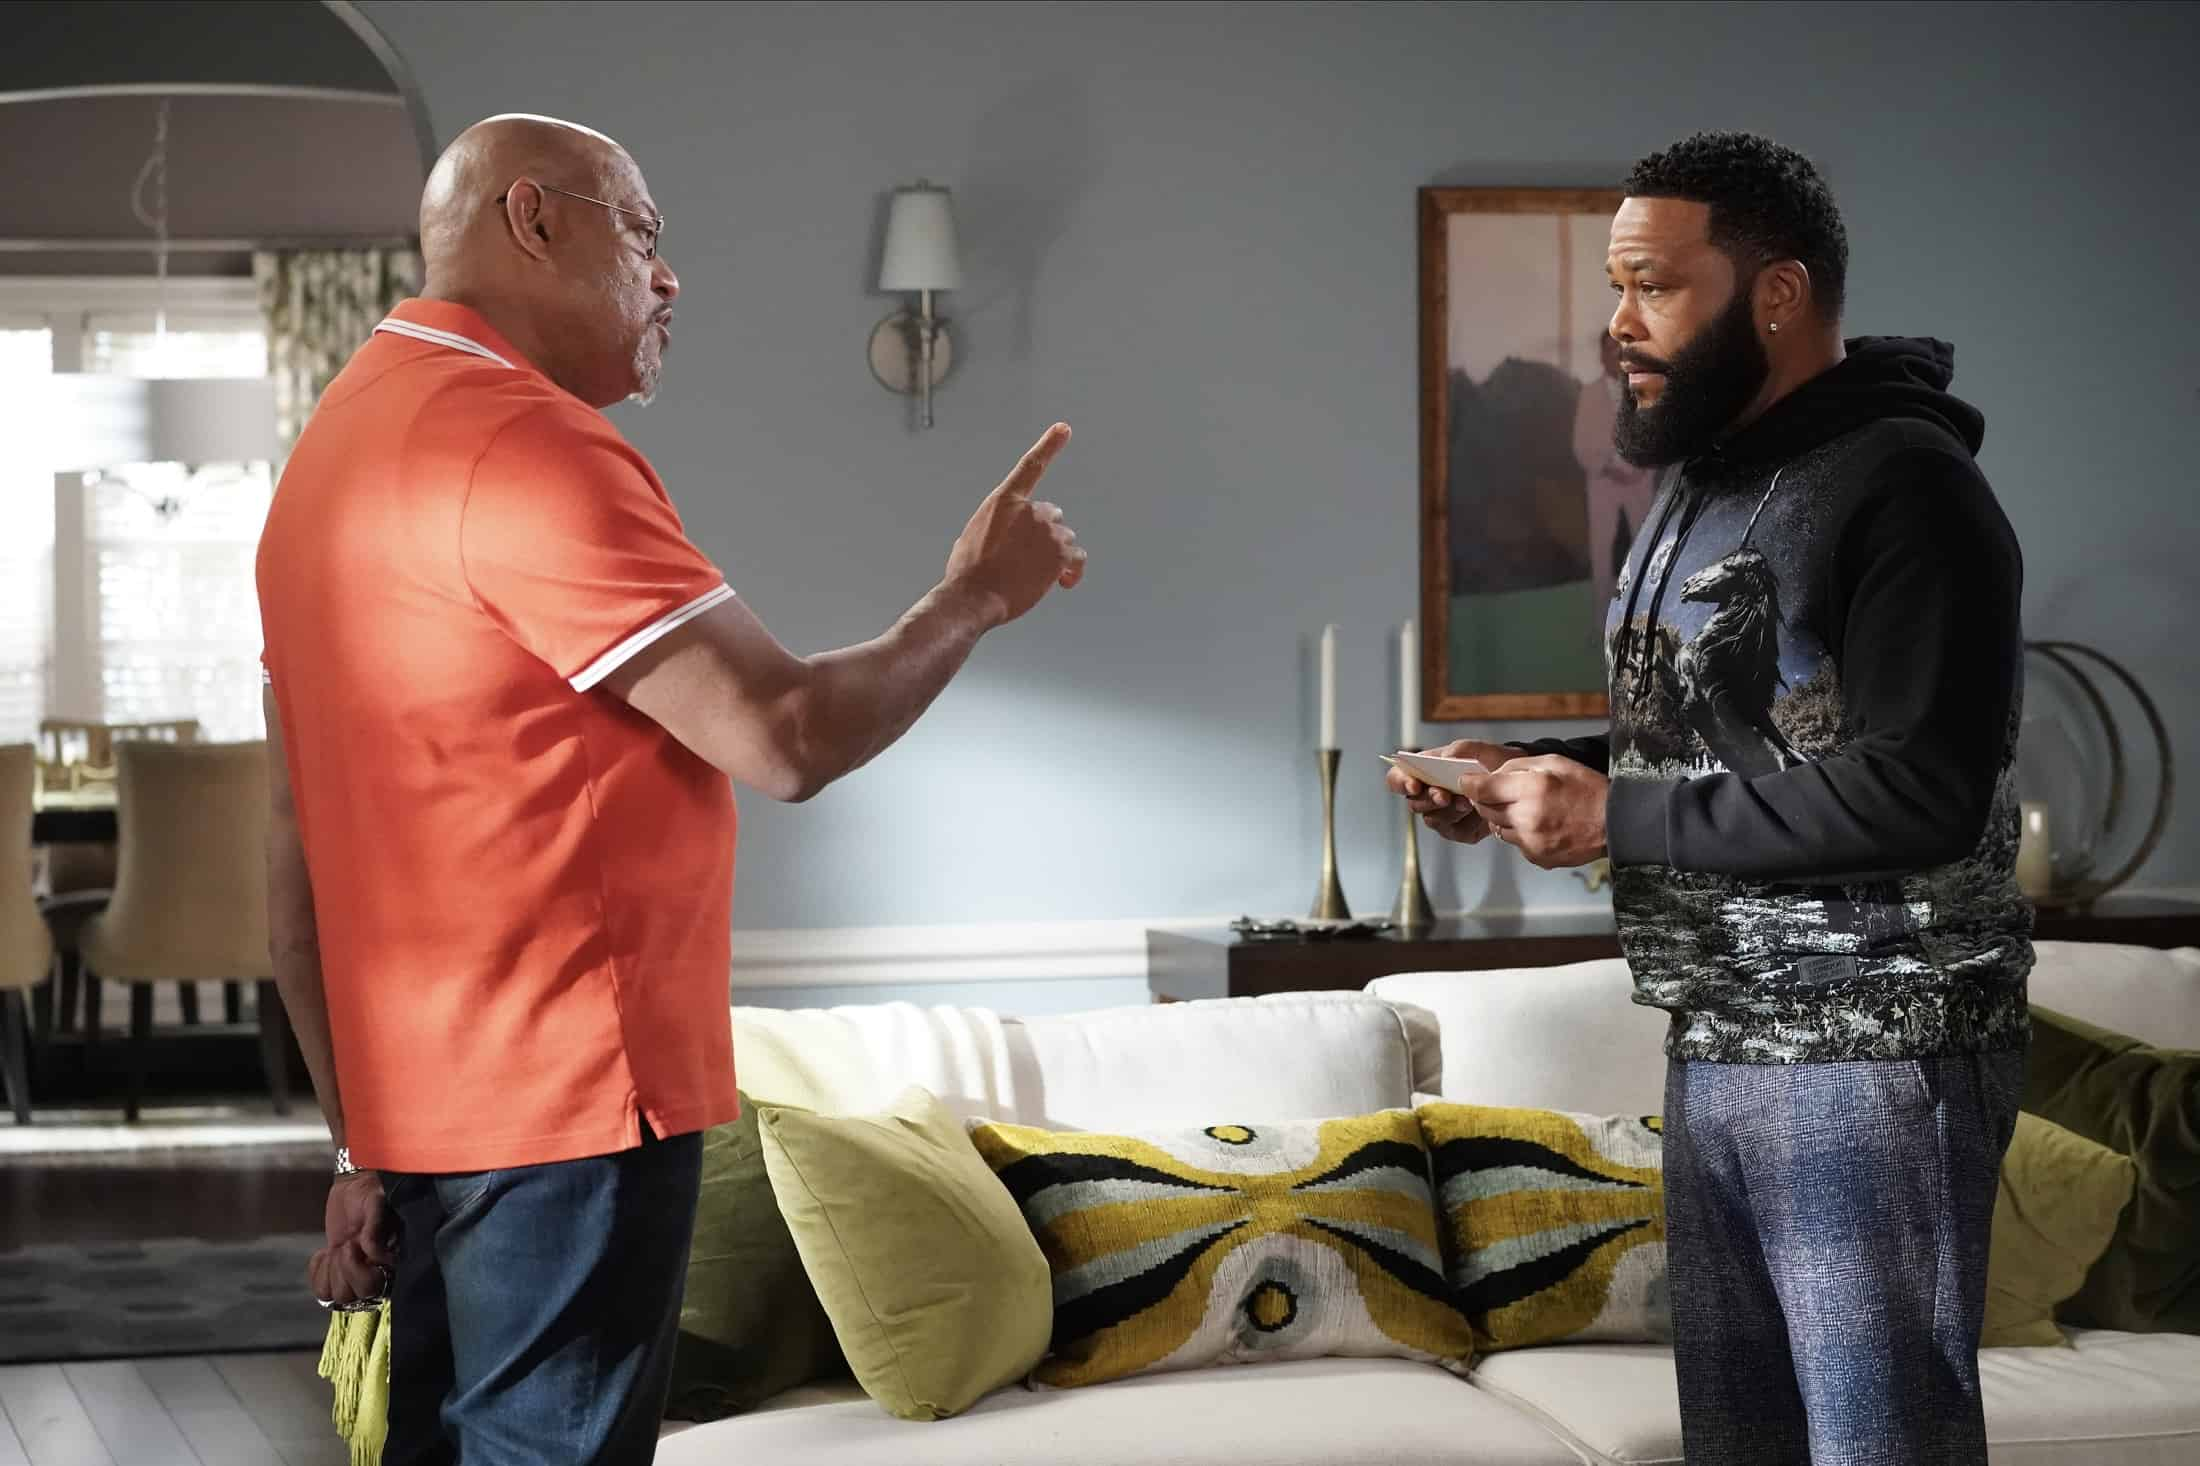 """BLACK-ISH Season 7 Episode 21 - """"Urban Legend"""" – Dre feels pigeonholed to the urban marketing team at Stevens & Lido and realizes he needs to make some big career changes. Boyz II Men stop by the office to help out the team with a SoFi campaign pitch.  Meanwhile, Junior has to deal with the twins who are overstaying their welcome at his and Olivia's apartment on the season finale of """"black-ish,"""" TUESDAY, MAY 18 (9:00-9:30 p.m. EDT), on ABC. (ABC/Richard Cartwright) LAURENCE FISHBURNE, ANTHONY ANDERSON"""